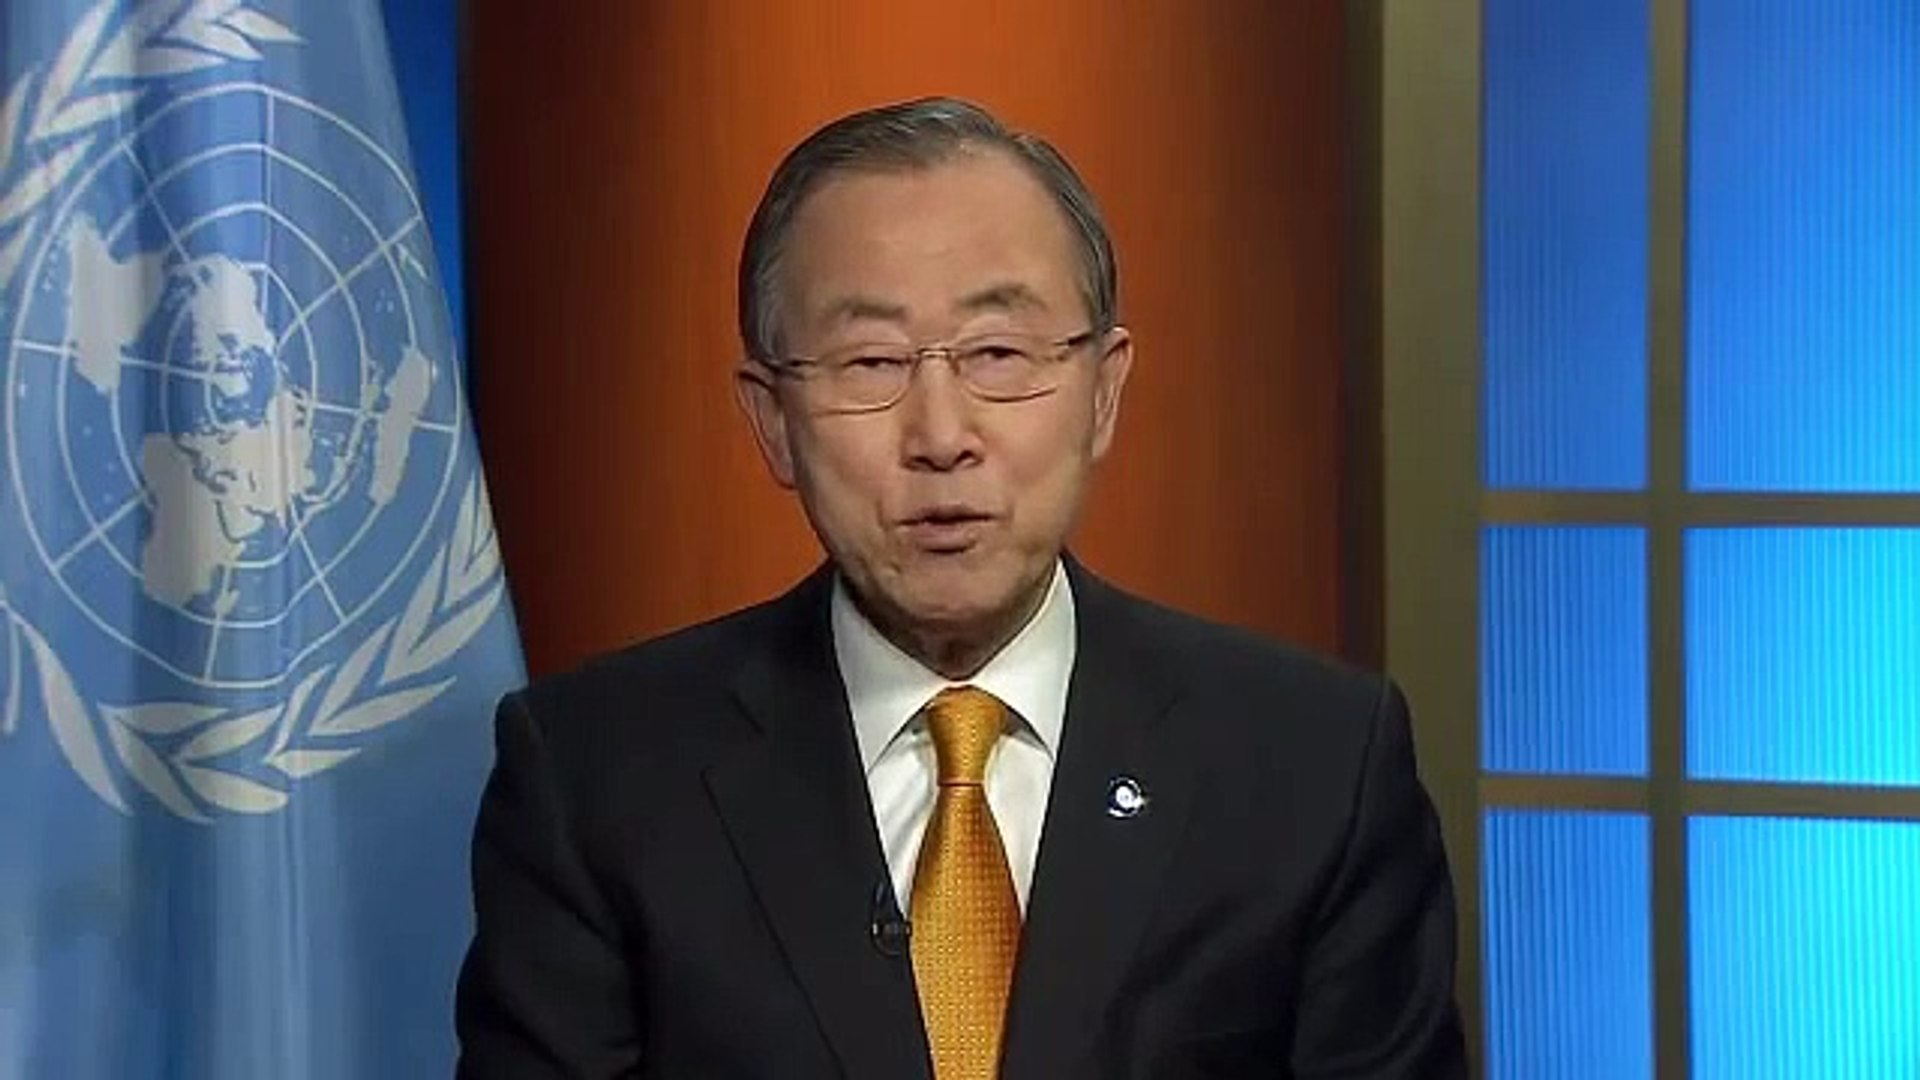 Ban Ki-moon - Message to the People of the Central African Republic